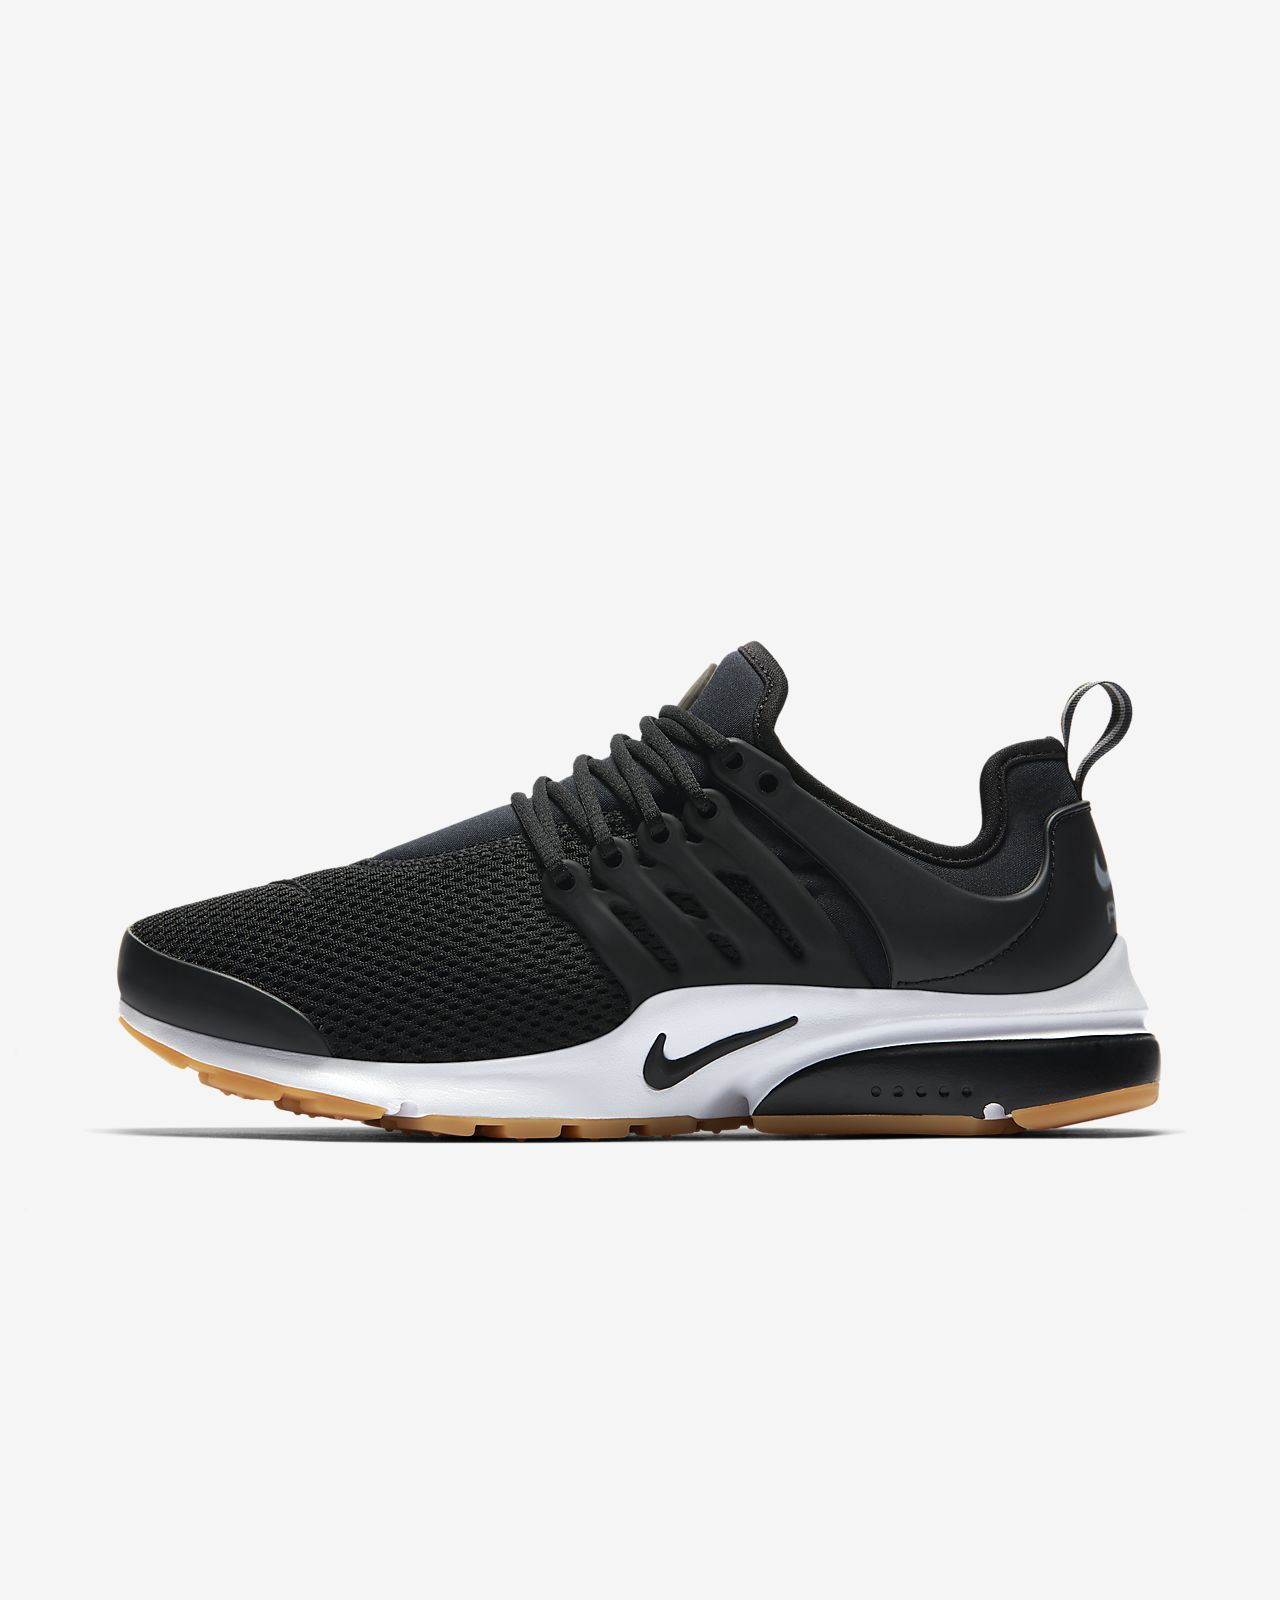 6b93977dd656 Nike Air Presto Women s Shoe. Nike.com